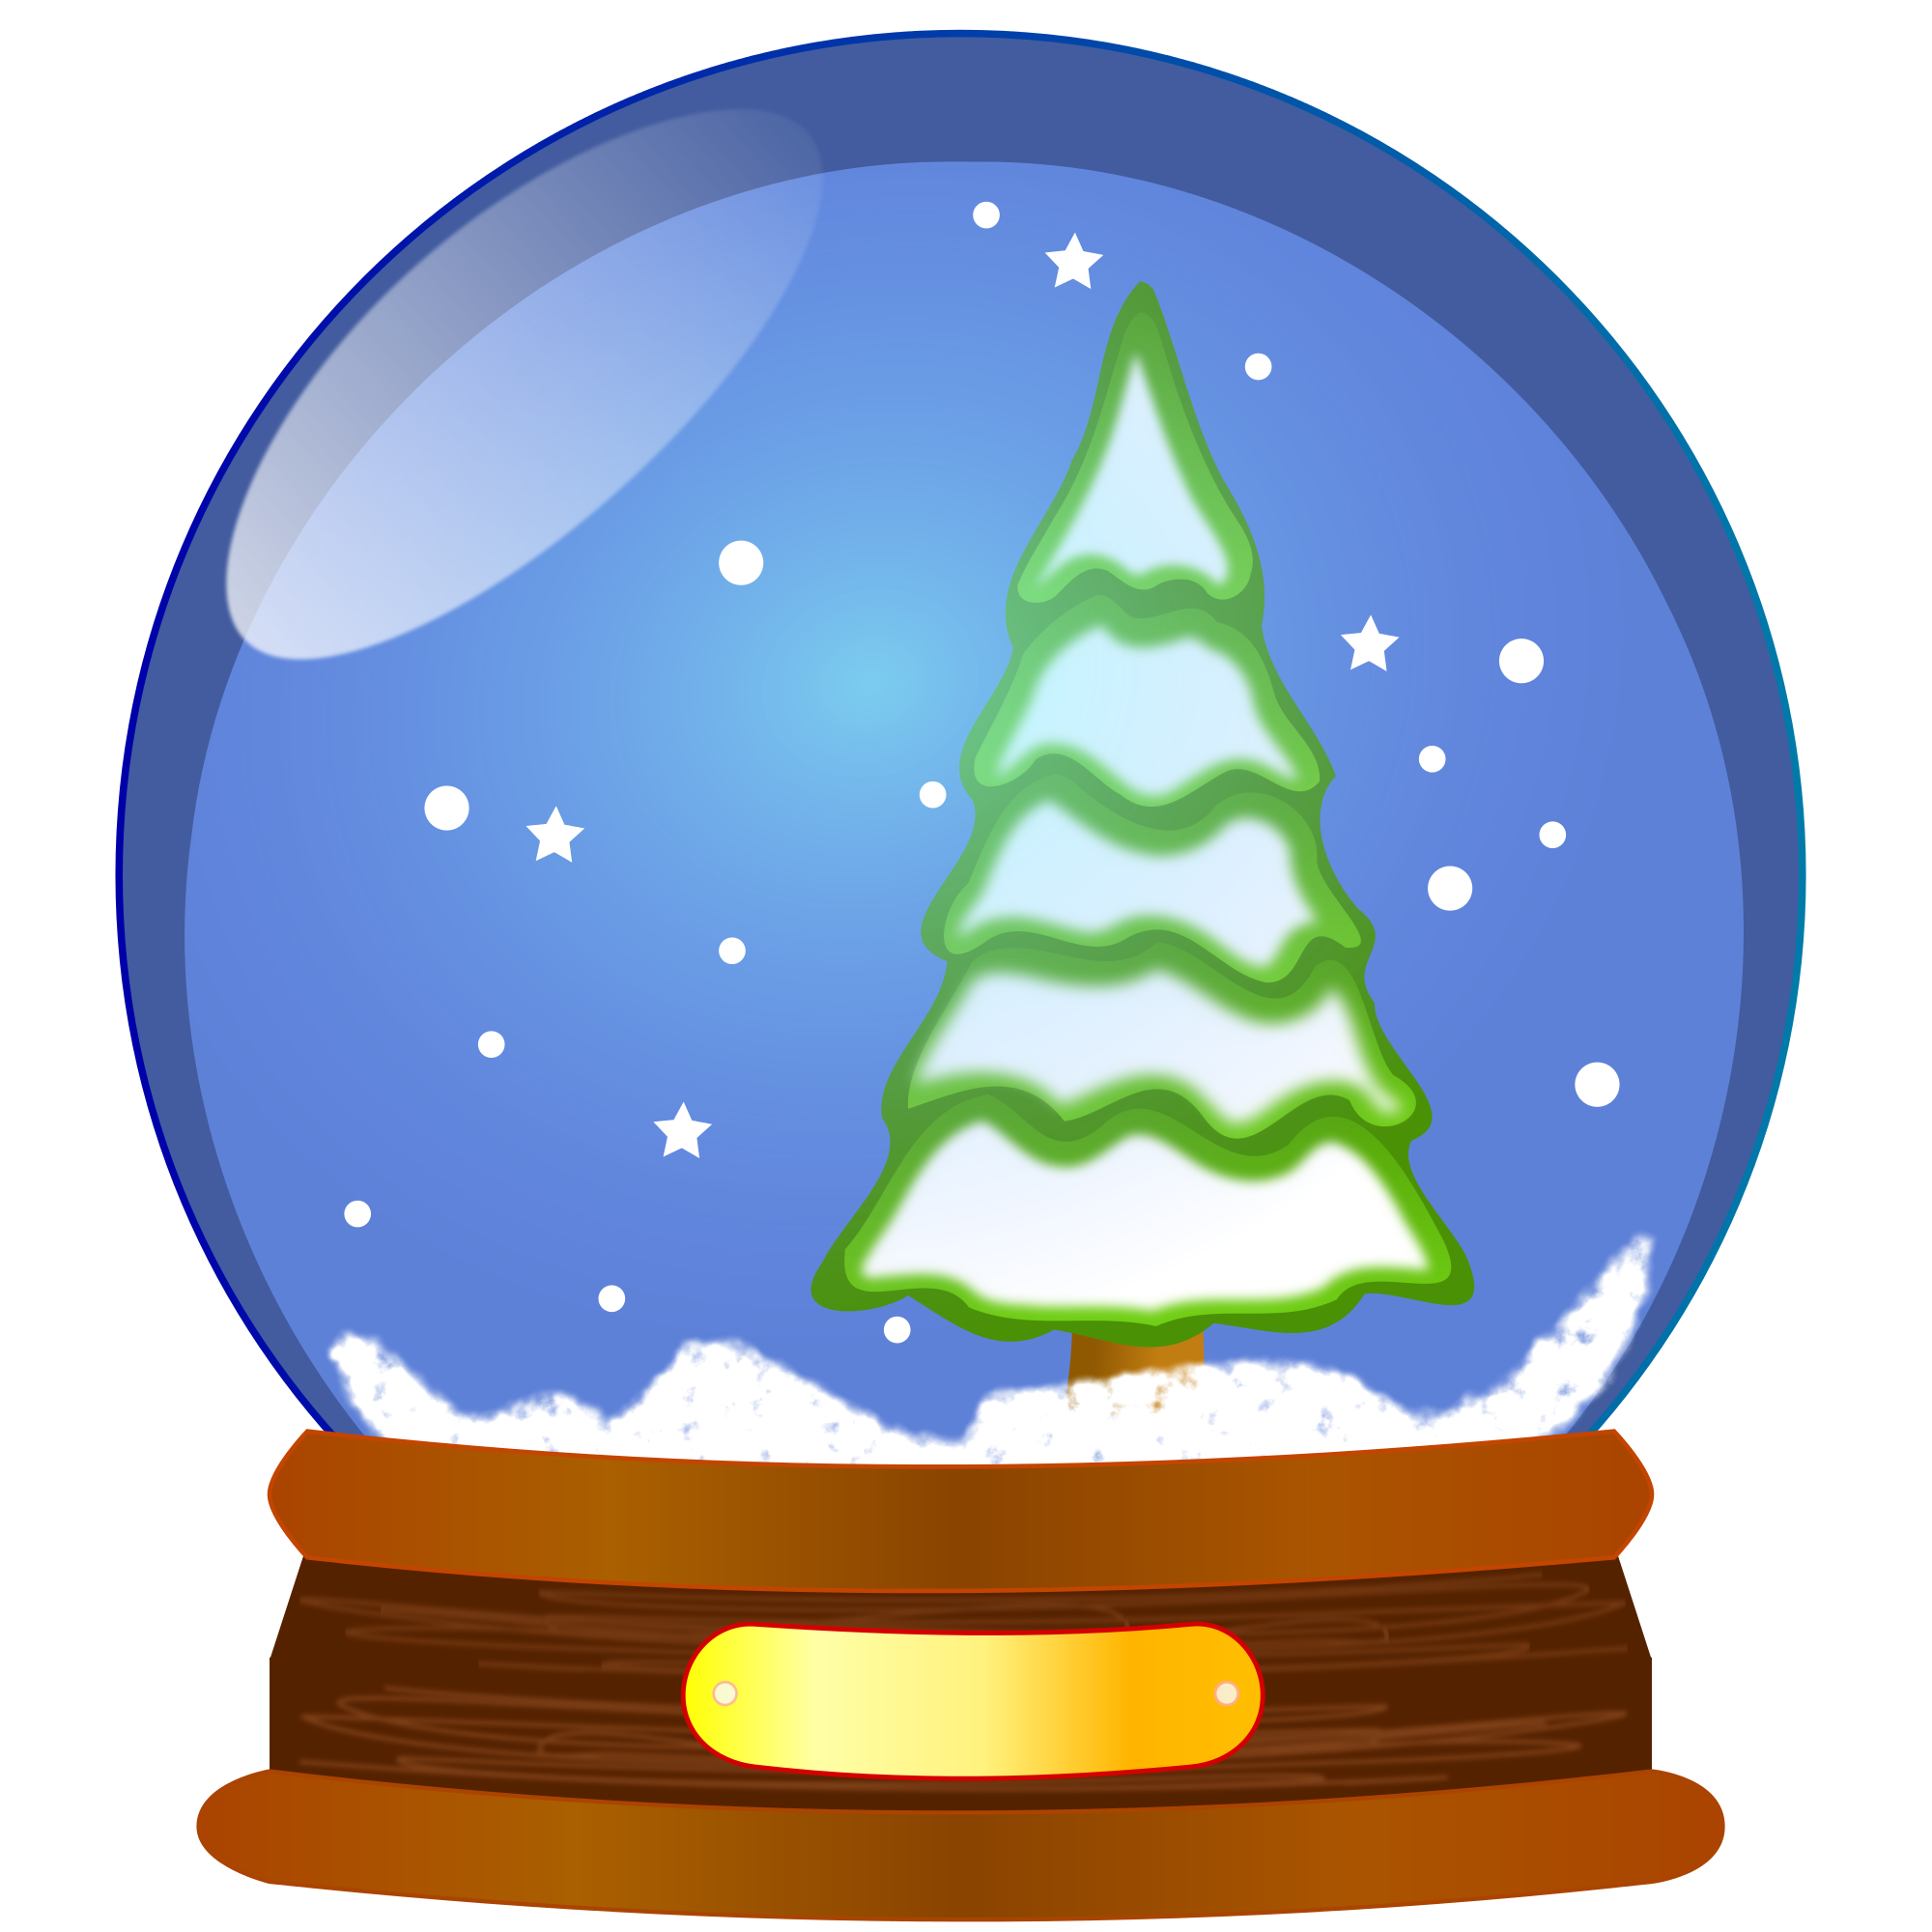 snowglobe drawing cartoon